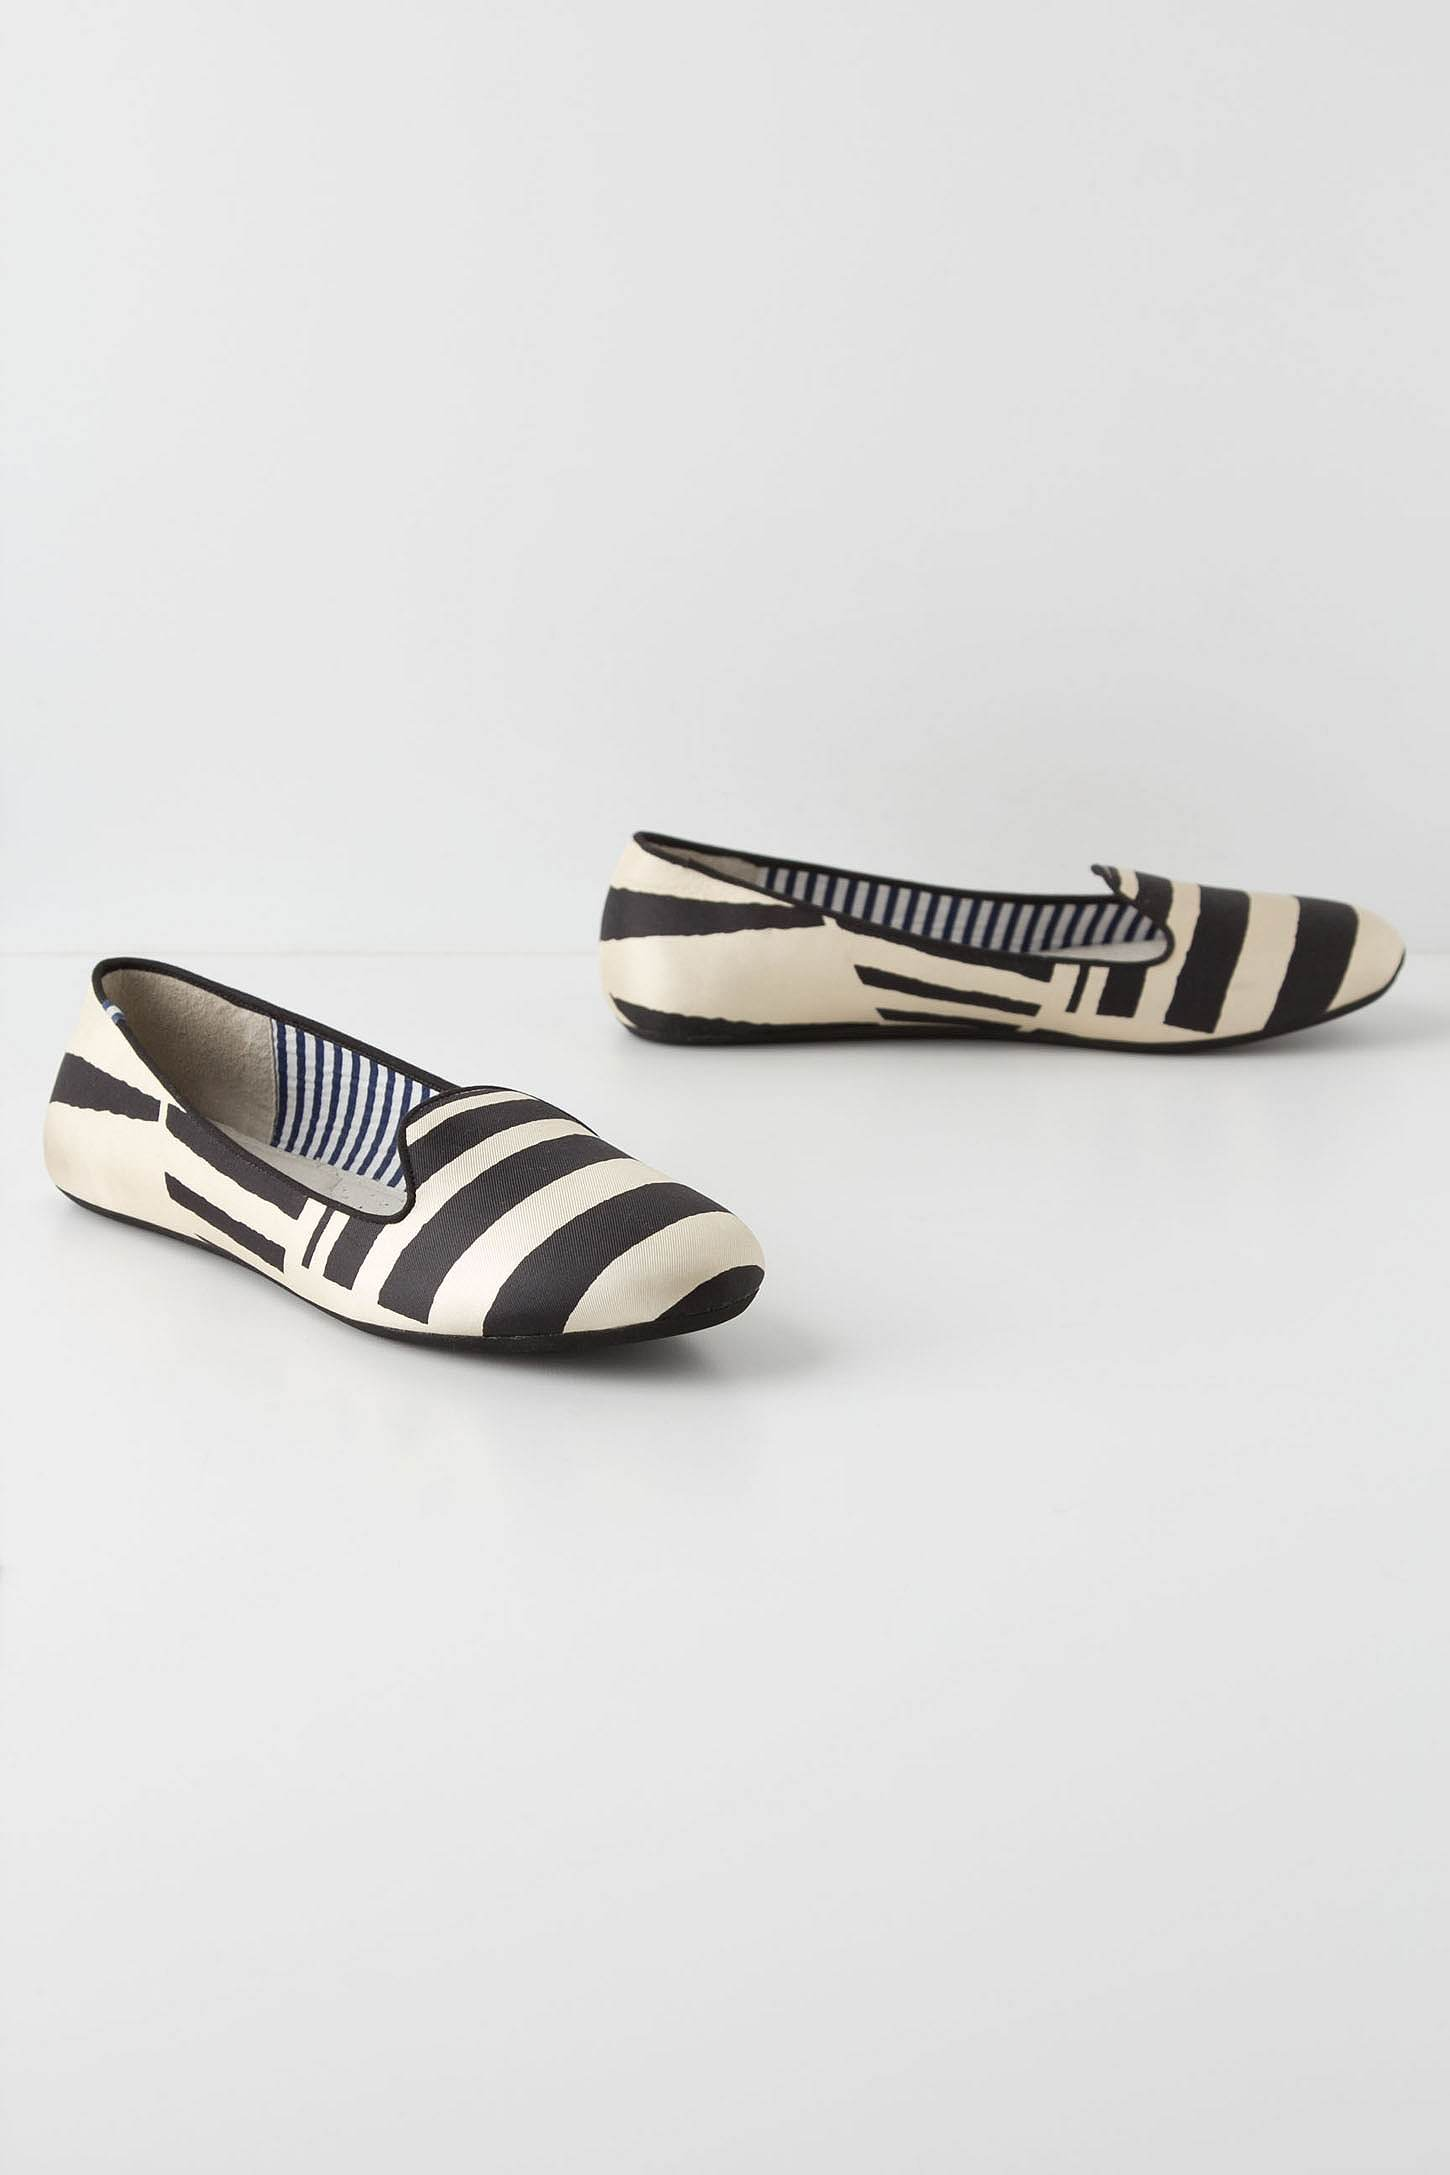 Broken Stripes Loafers by Charles Phillip